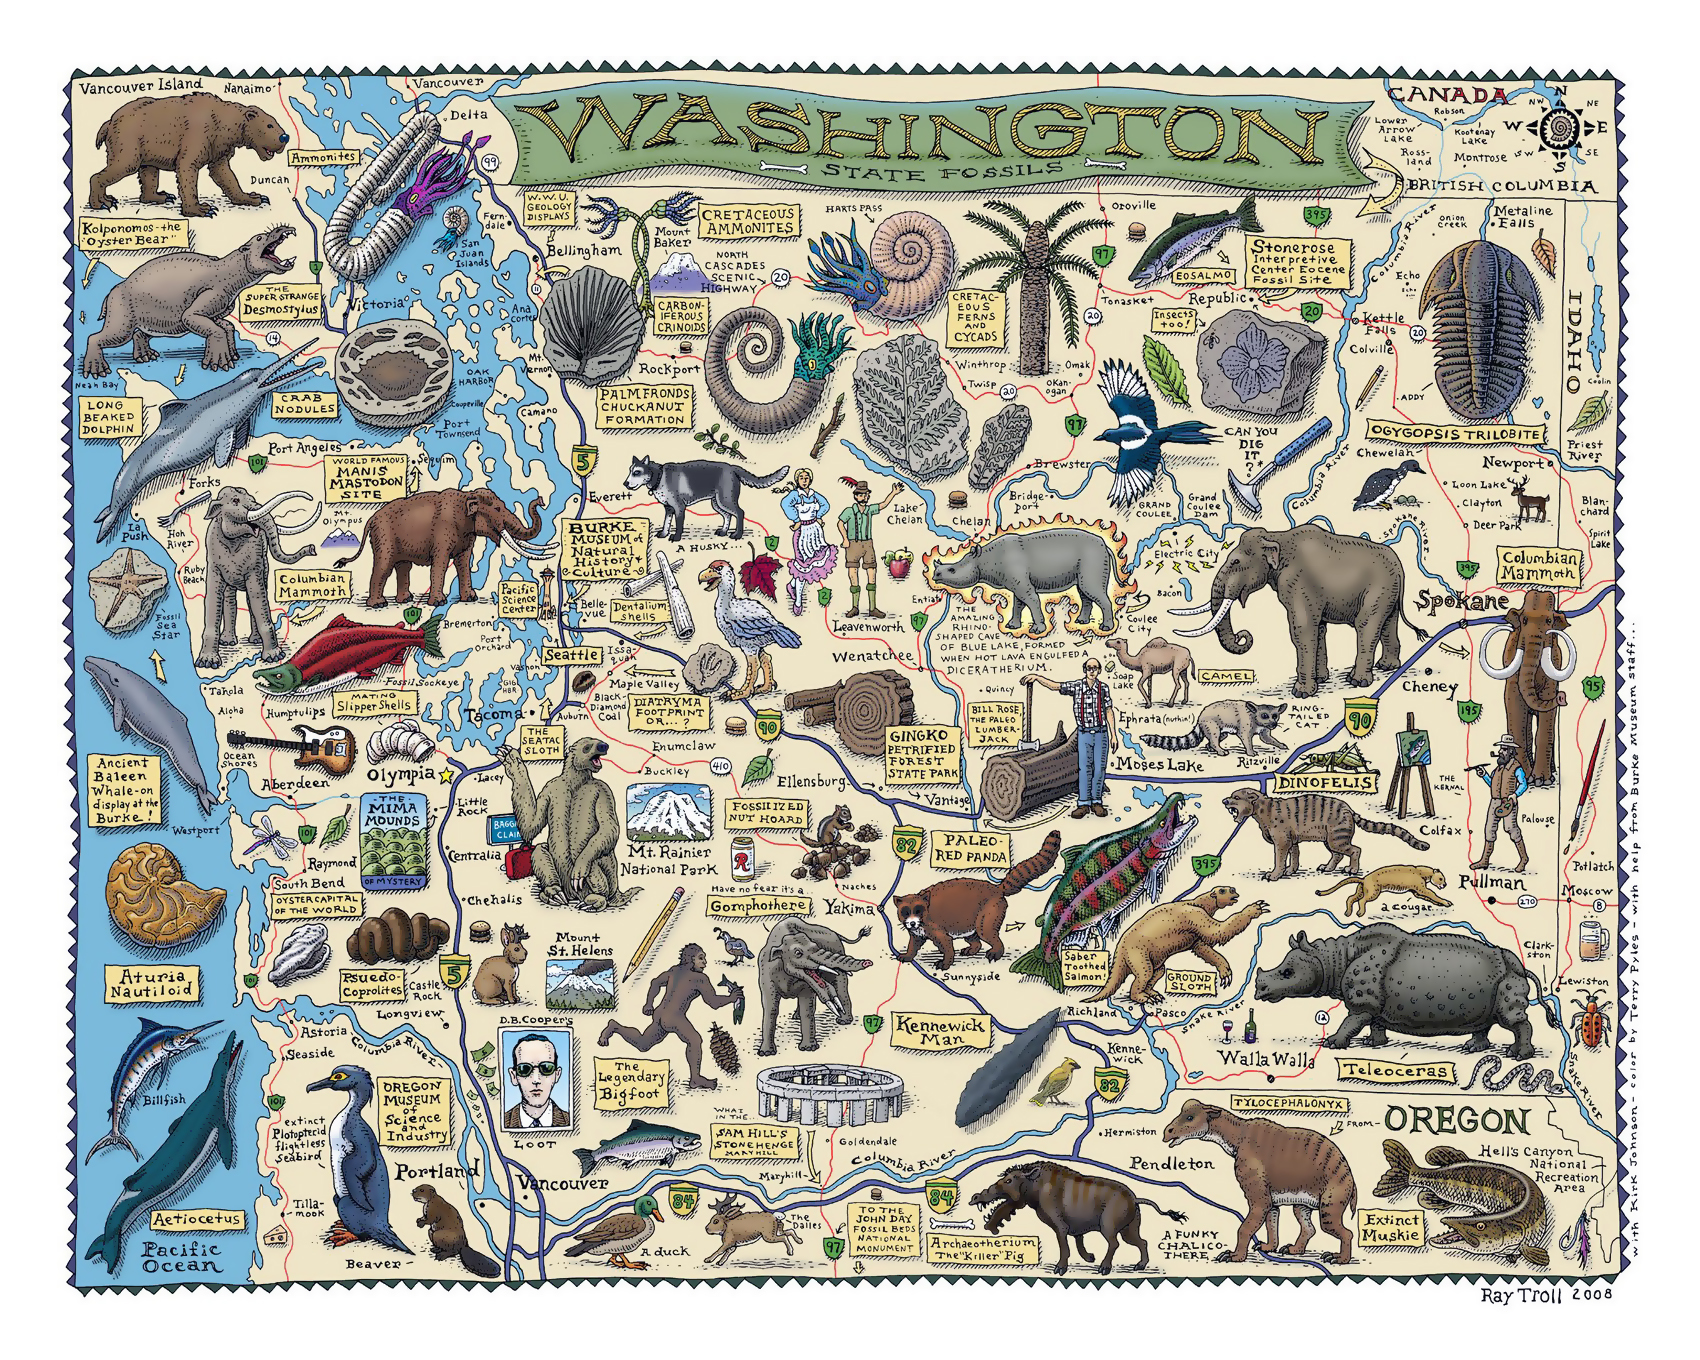 Large tourist illustrated map of Washington state | Washington state ...